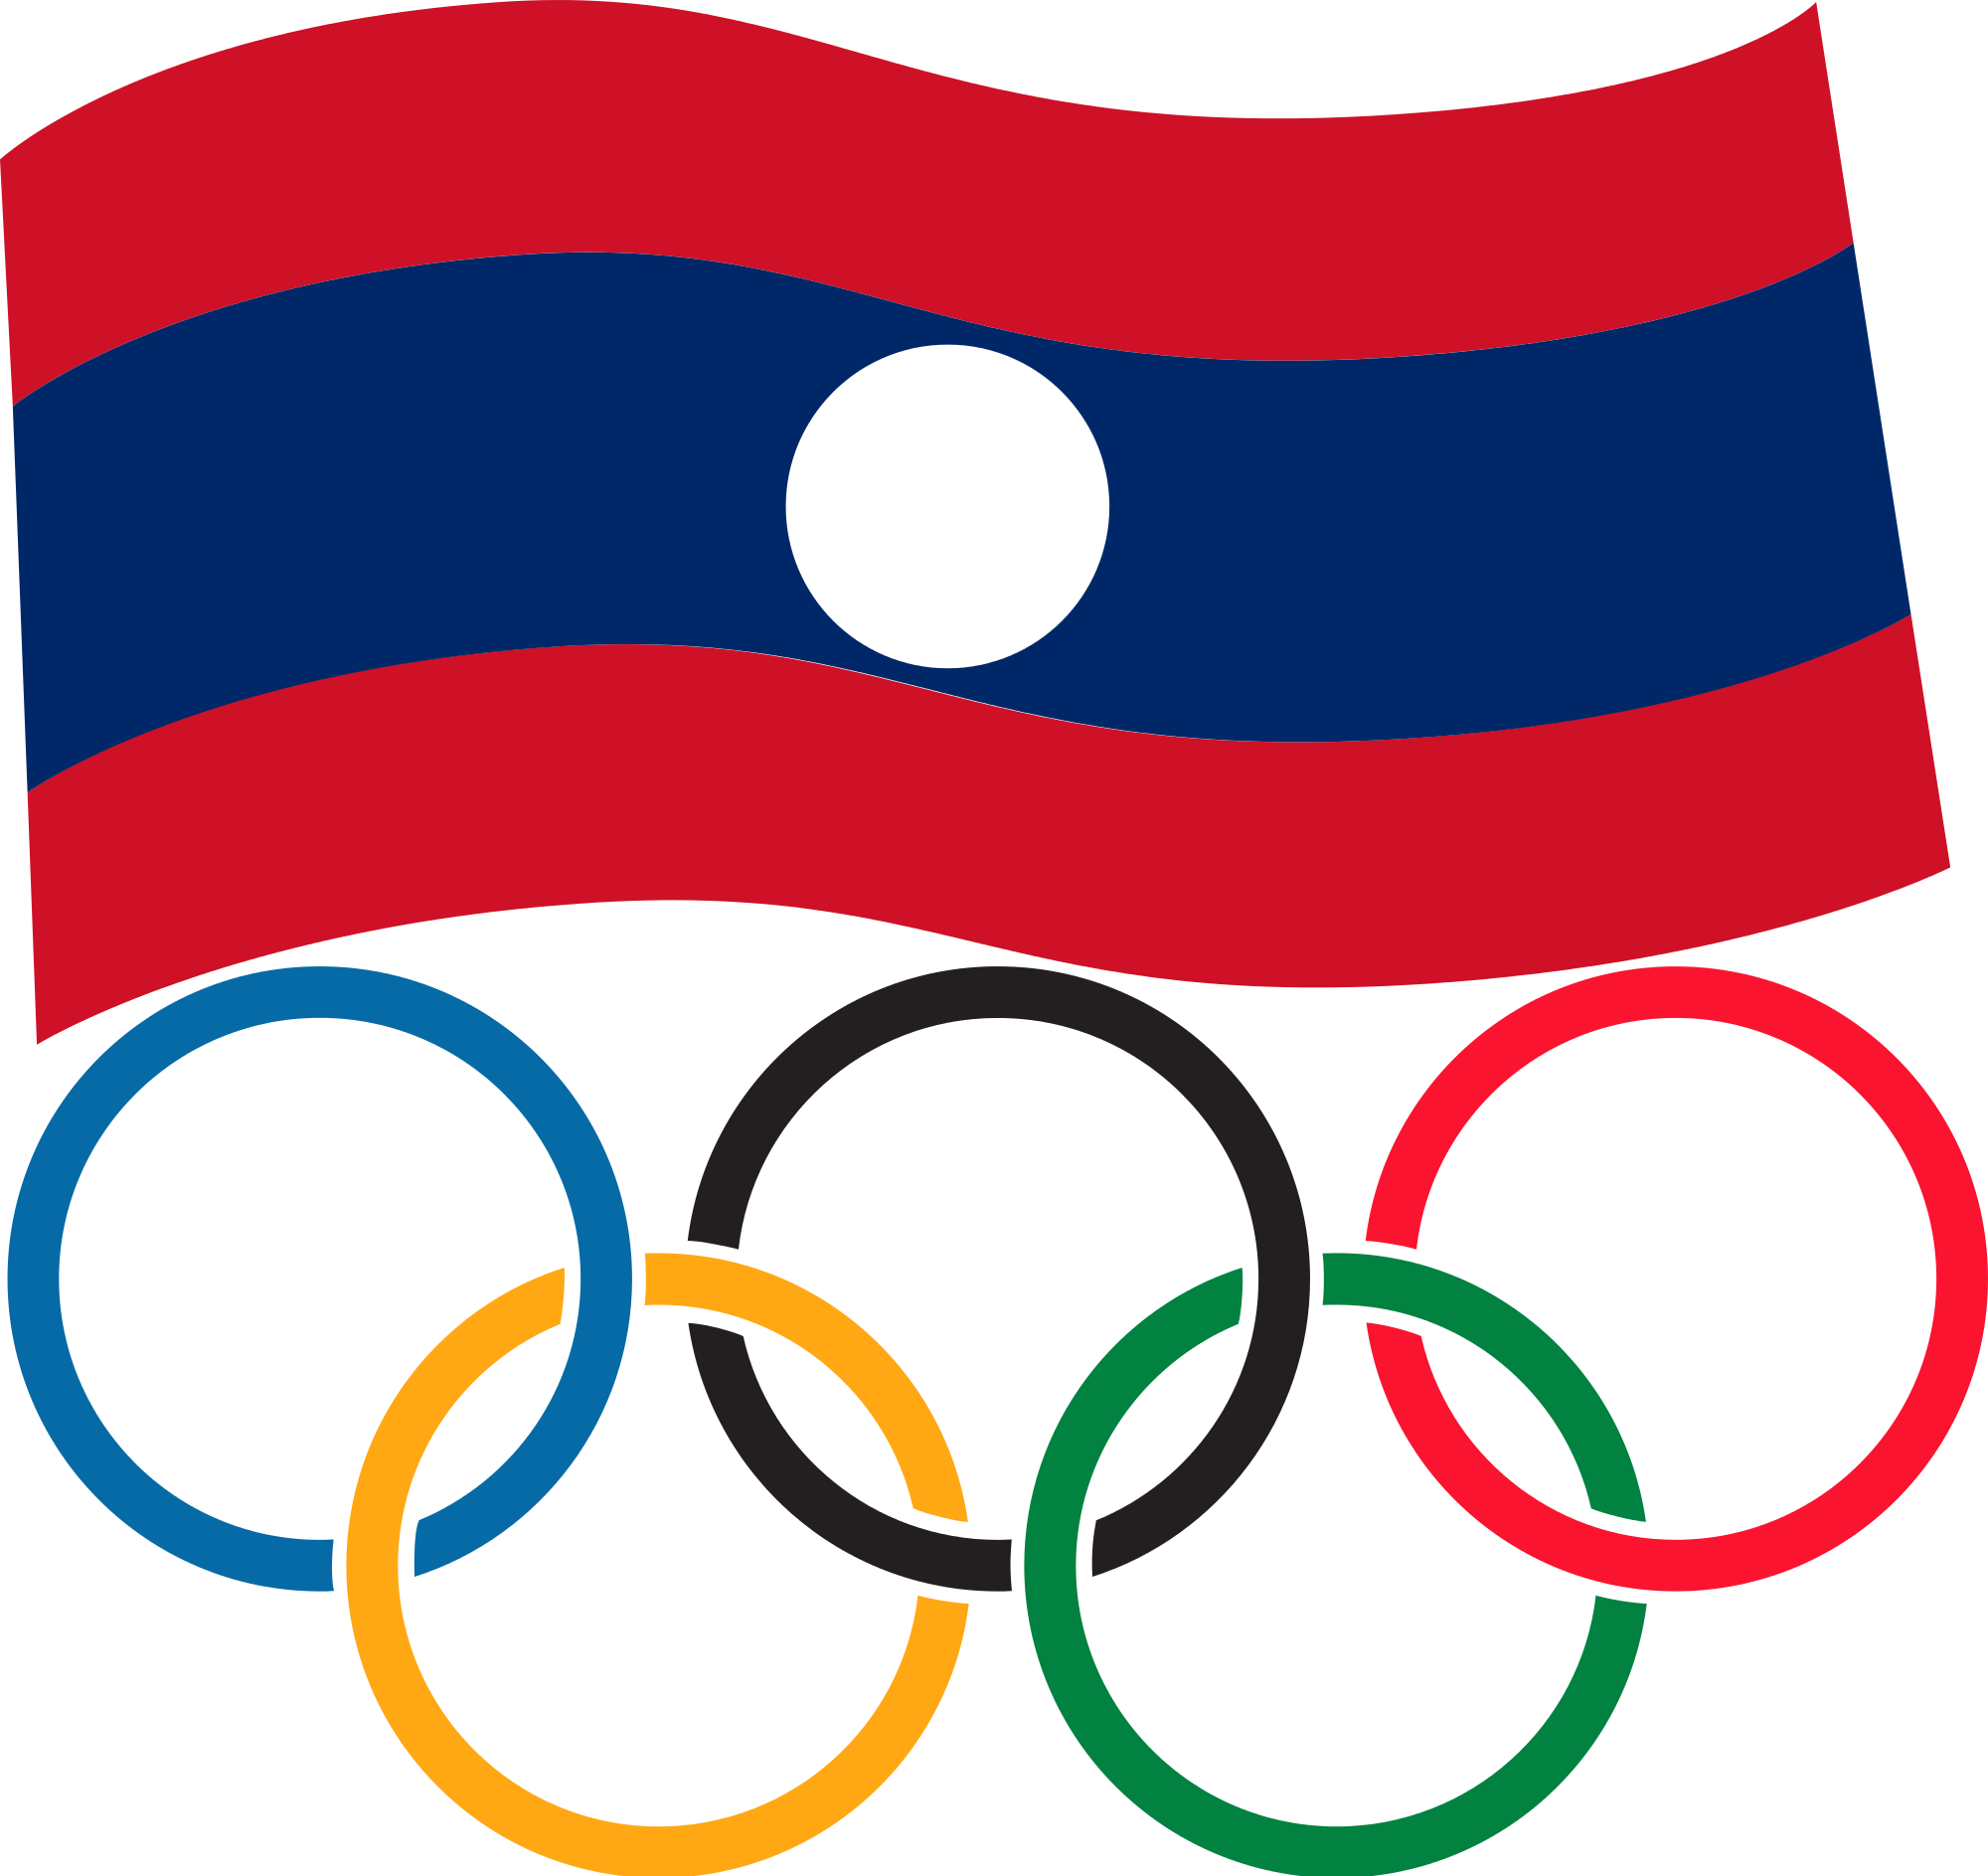 Olympic rings logo rio 2016 olympics logo designed by fred gelli - National Olympic Committee Of Lao